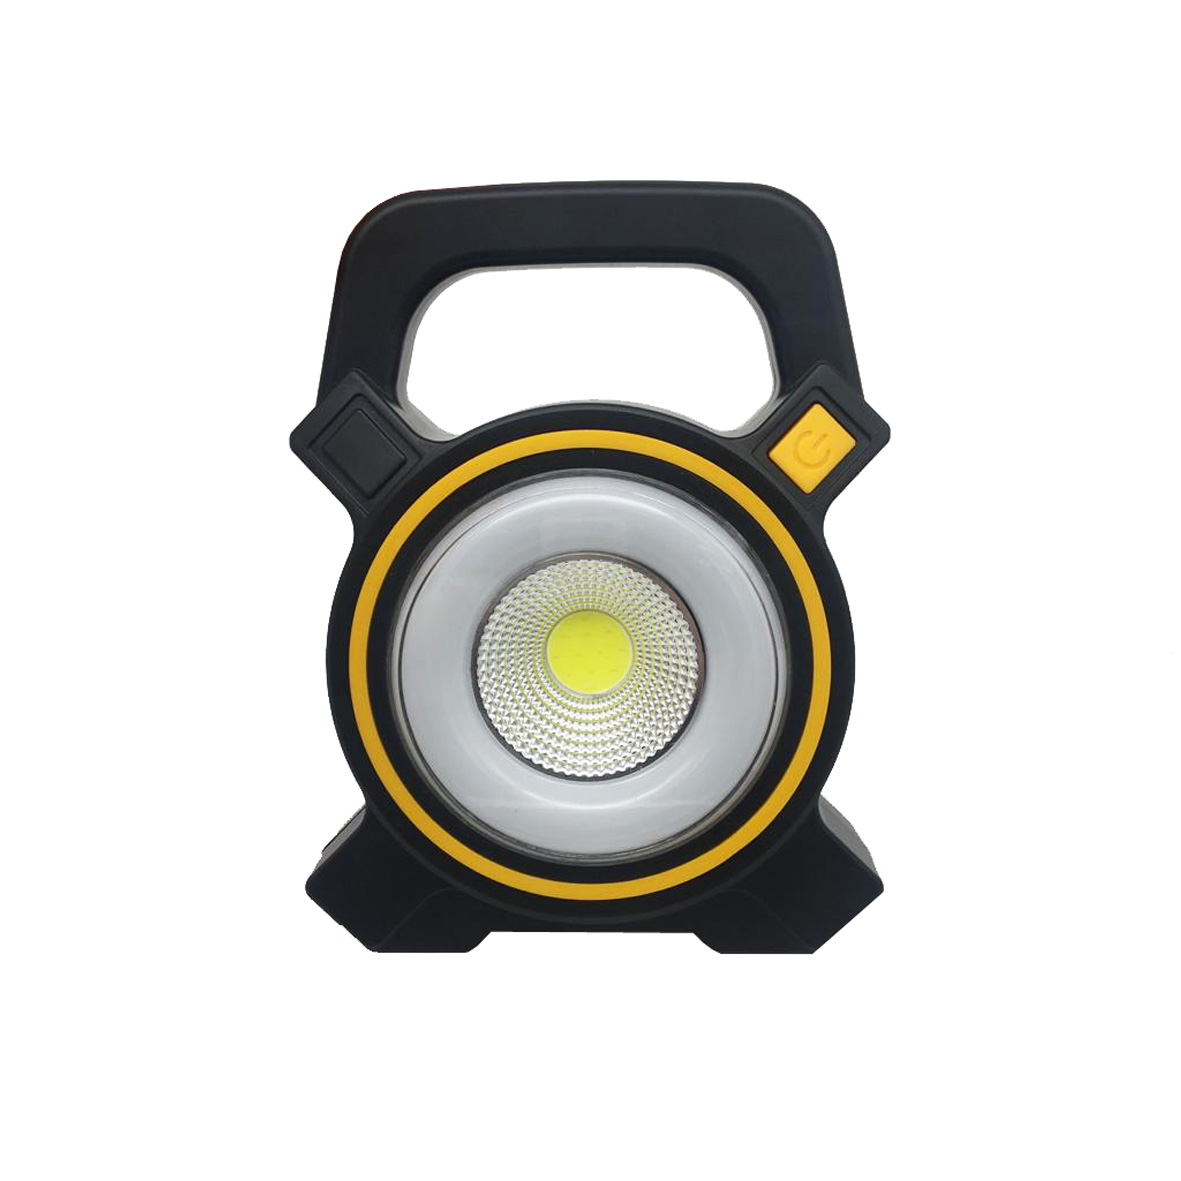 LED lamp, portable 3W COB rechargeable light, USB, solar energy